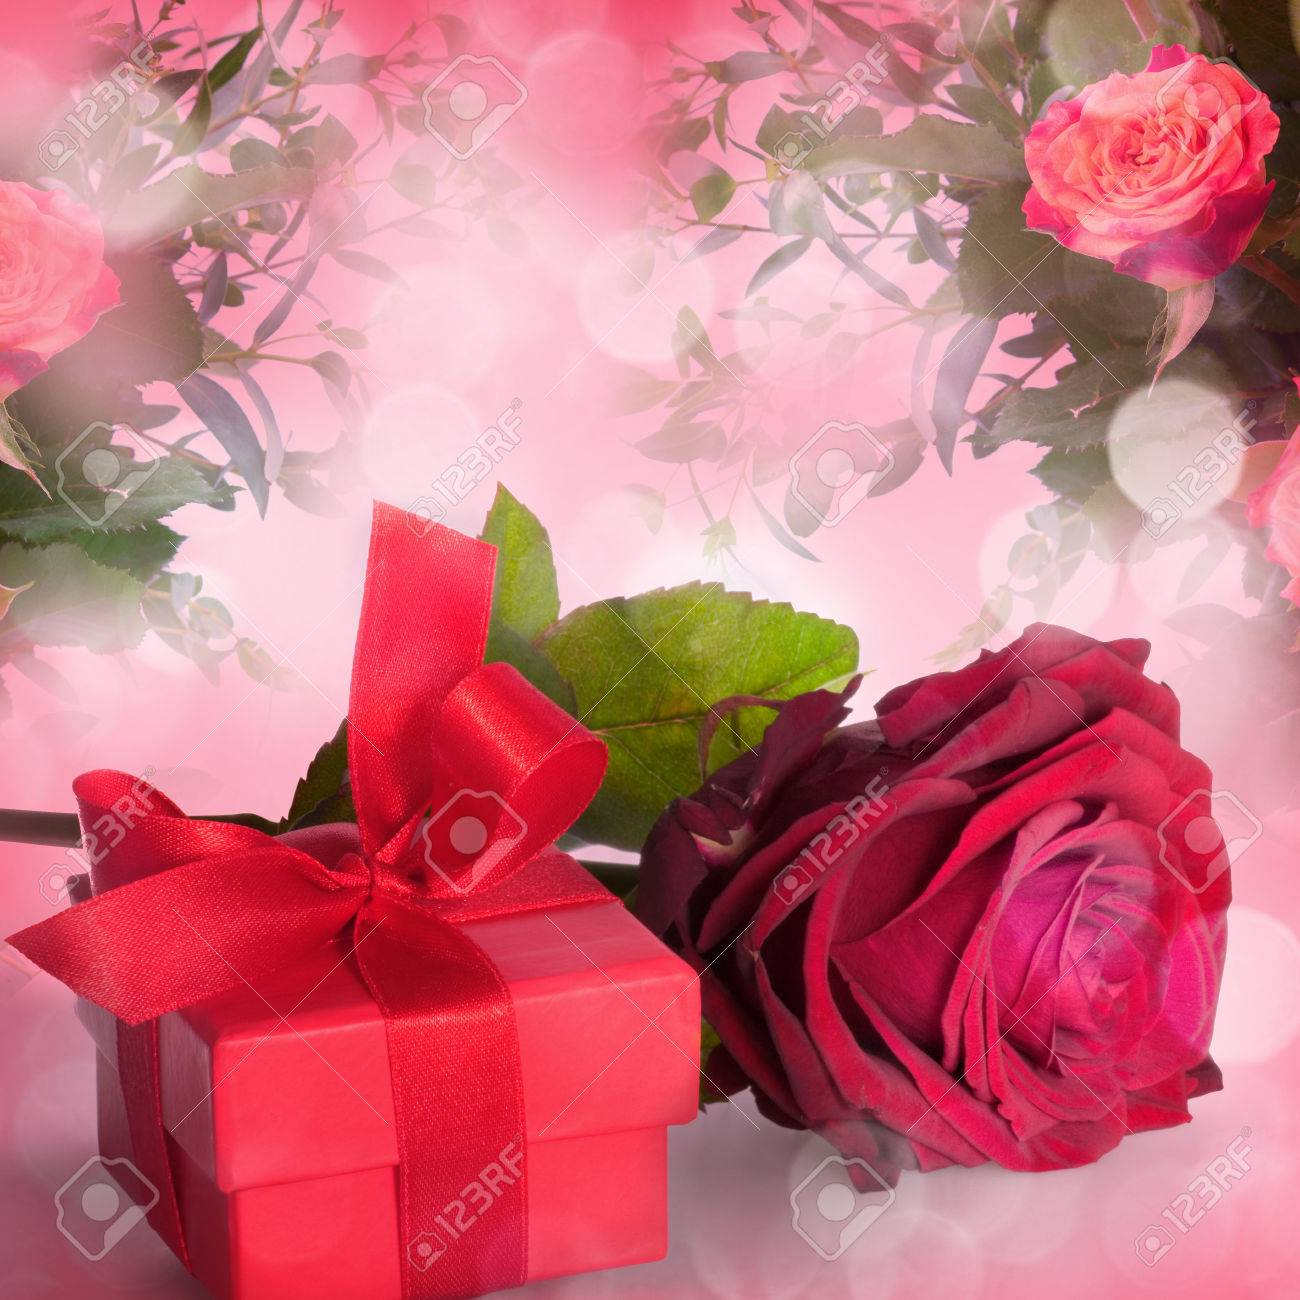 Bouquet of roses and gift box on romantic background - 43347477